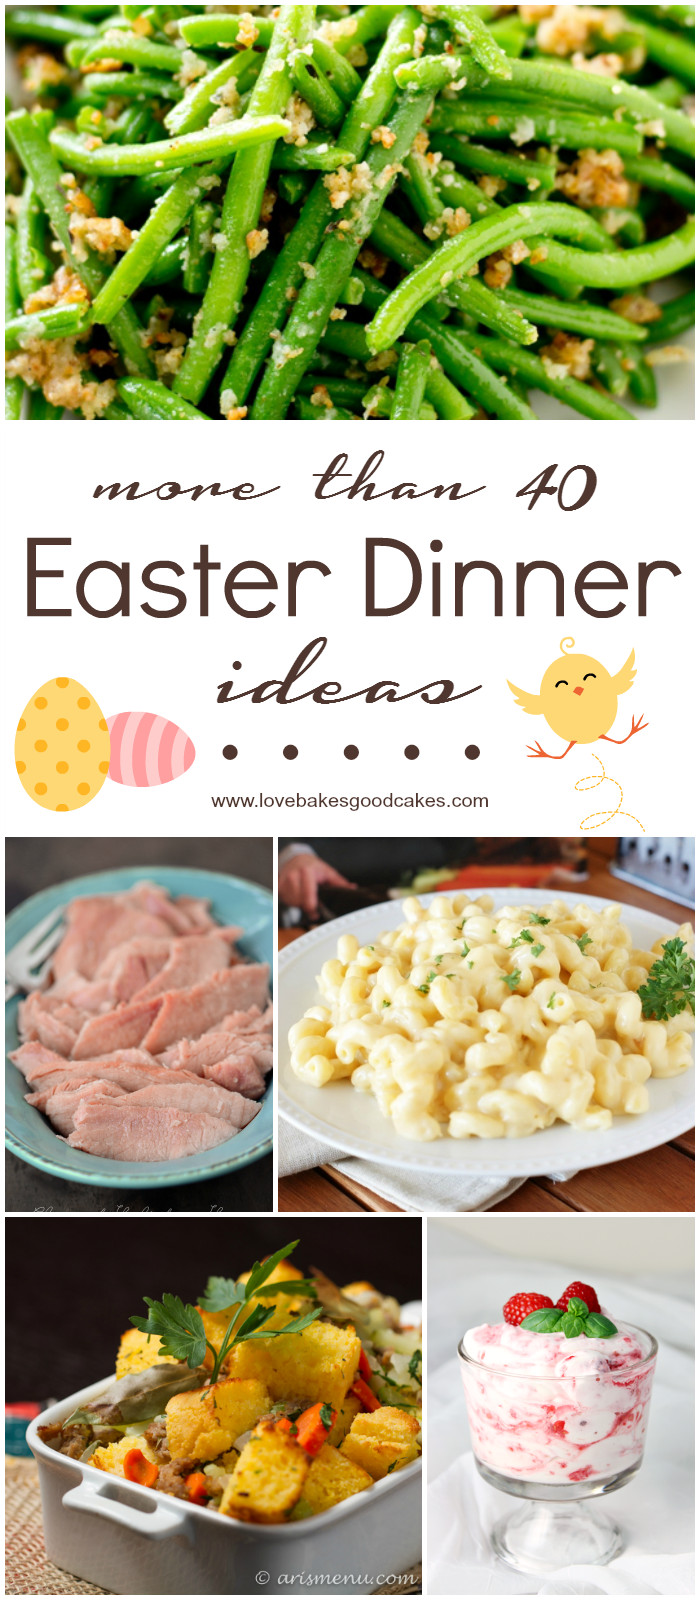 Good Easter Dinner Ideas  More than 40 Easter Dinner Ideas